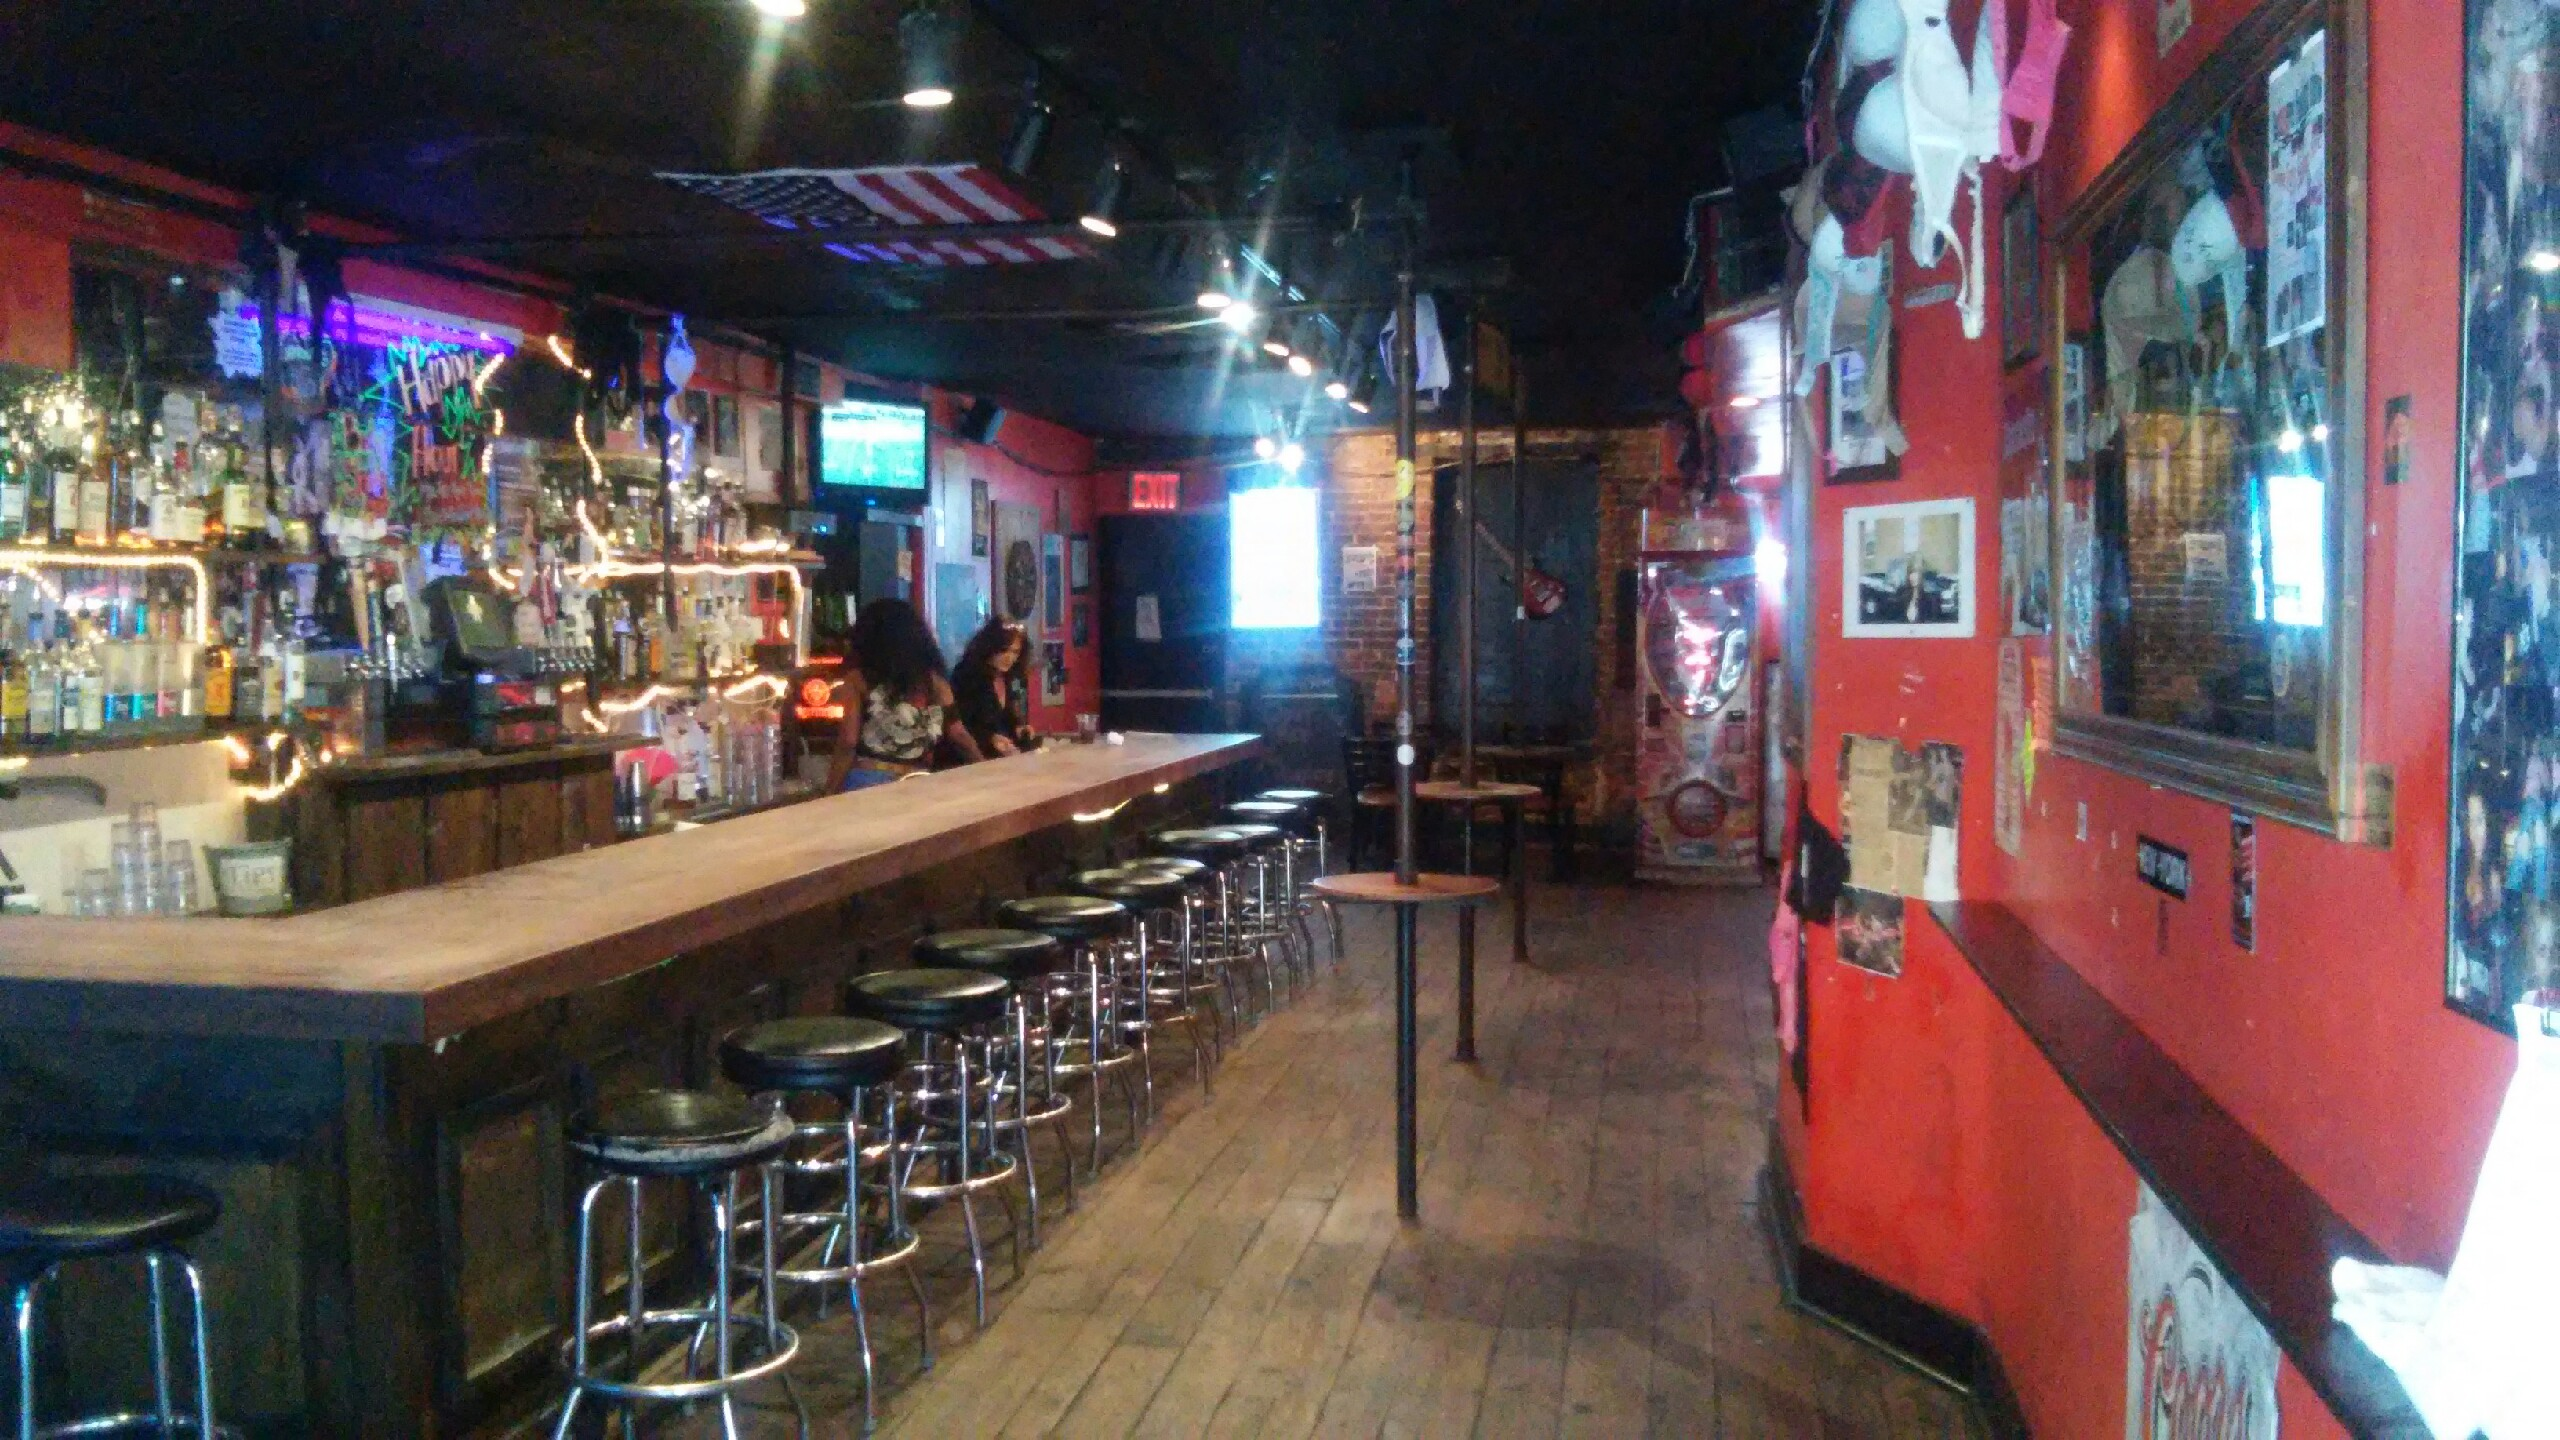 Main Space event space at Coyote Ugly Saloon in New York City, NYC, NY/NJ Area